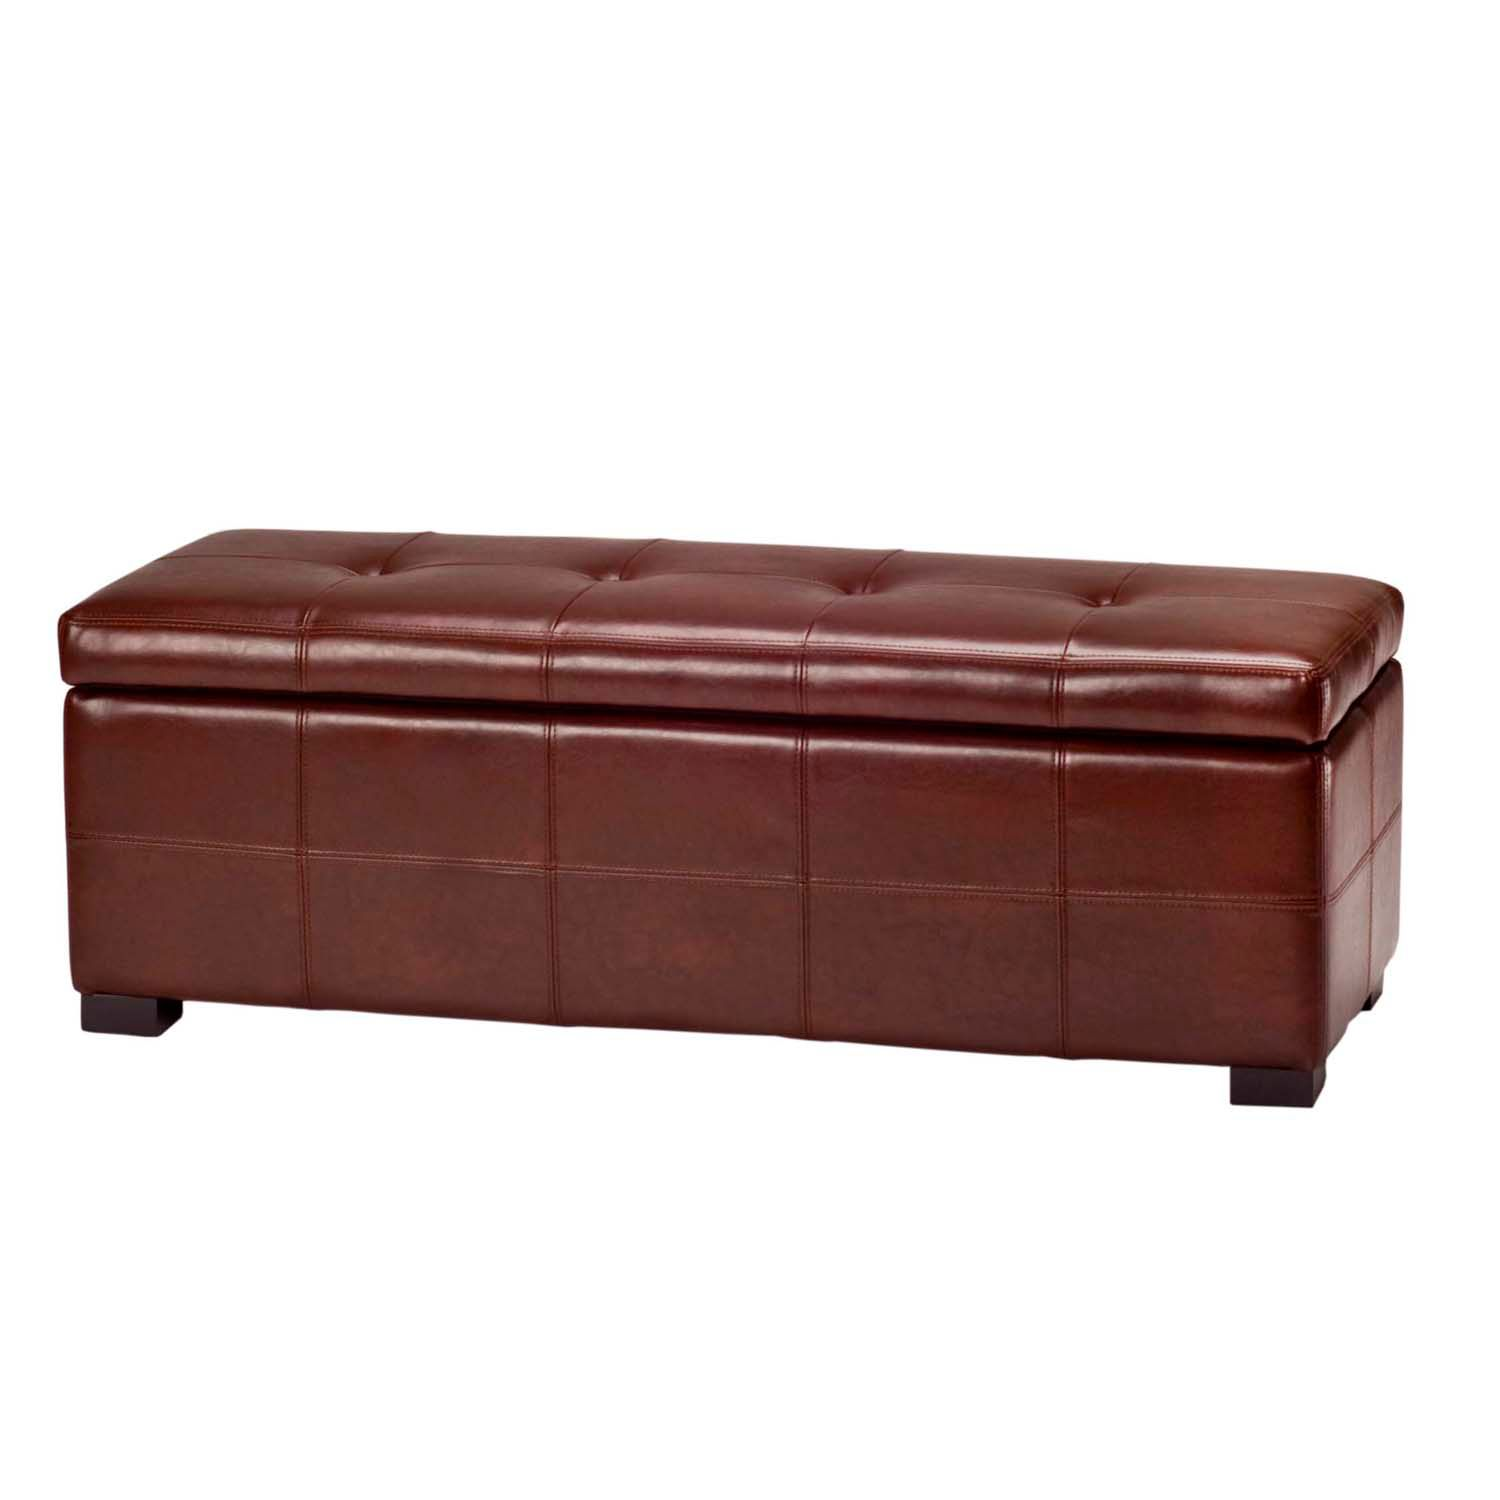 Safavieh Vivienne Large Tufted Storage Bench